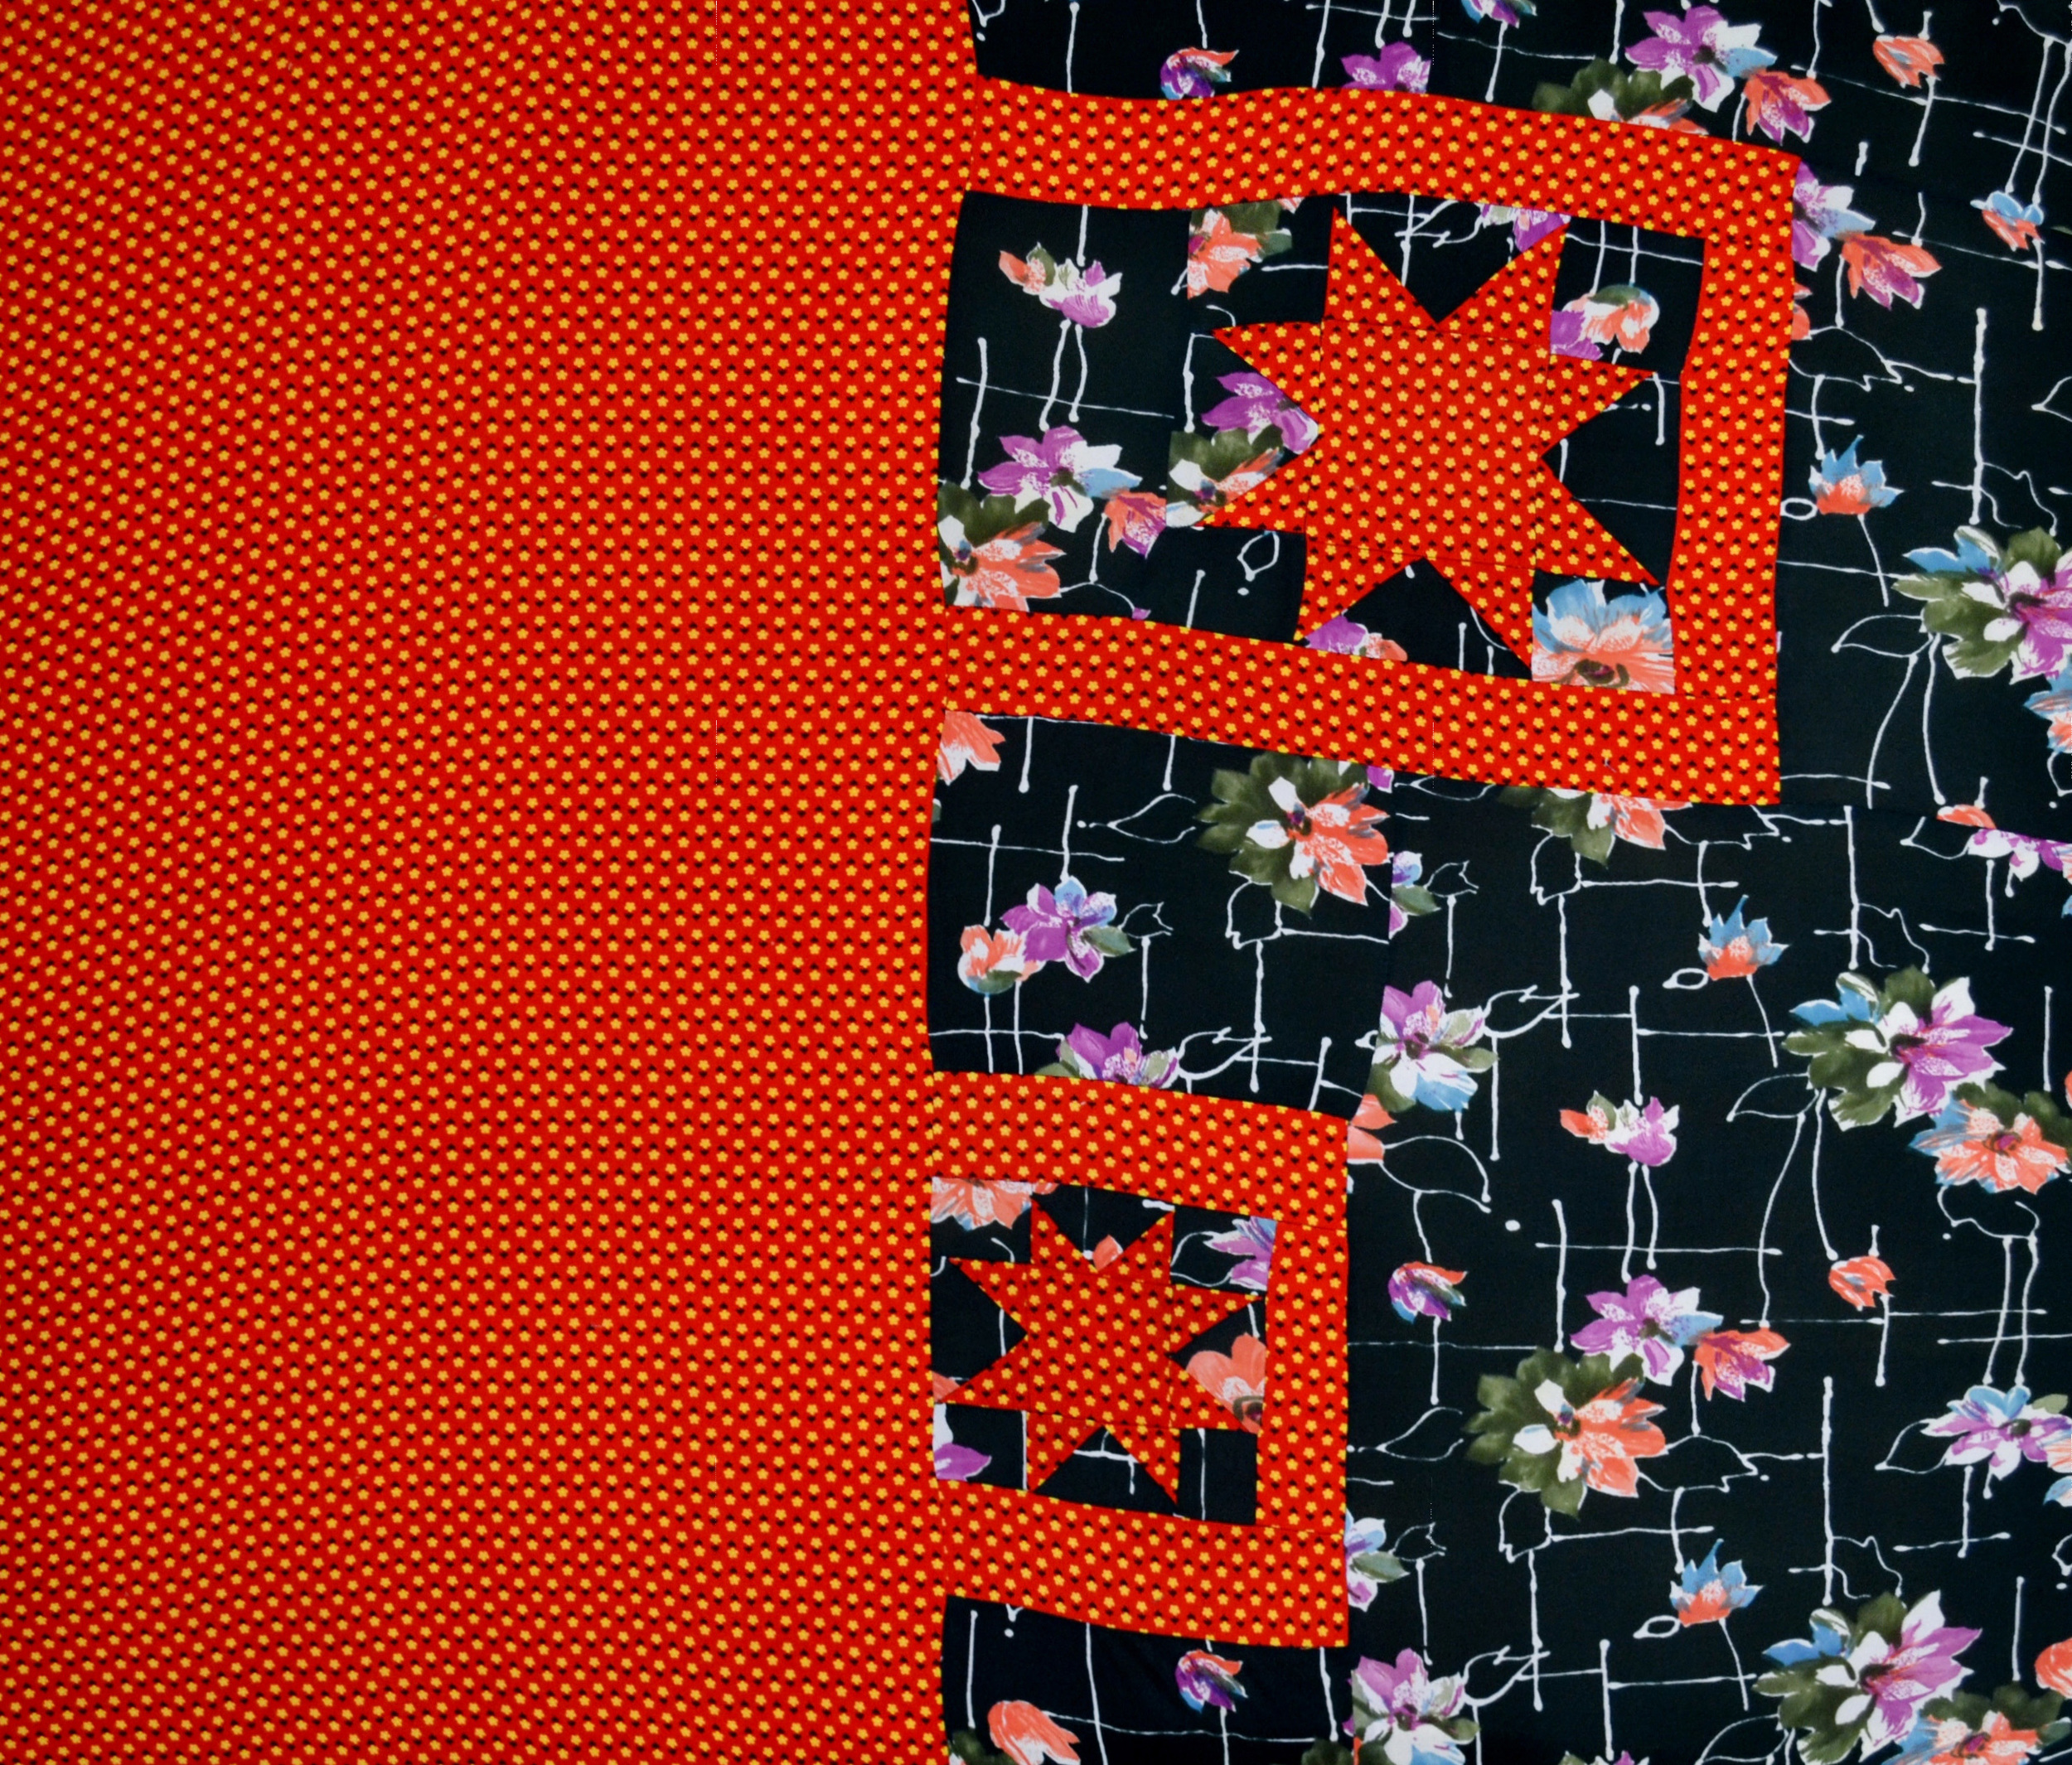 Shooting Stars   , 2011 sewn fabric 42 x 50 inches  Artist Collection